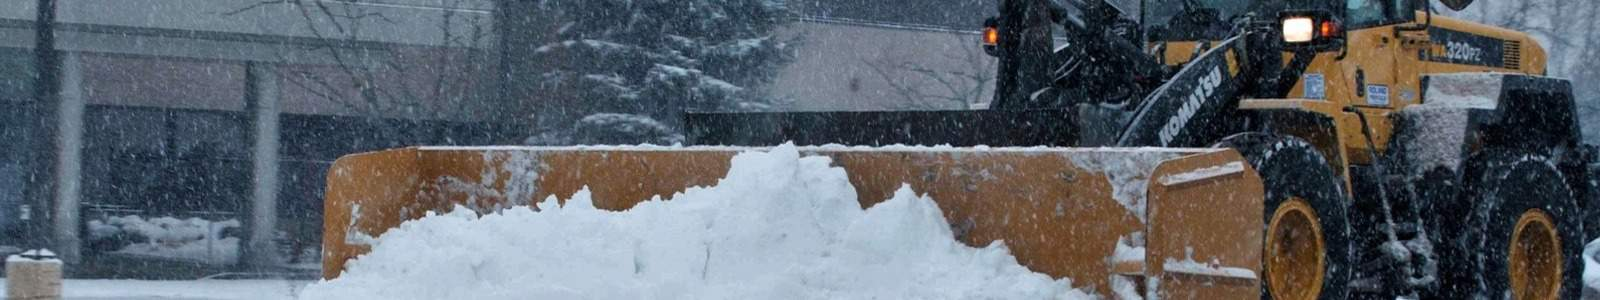 Bergen County Snow Management - Snow Removal Service Roma Snow